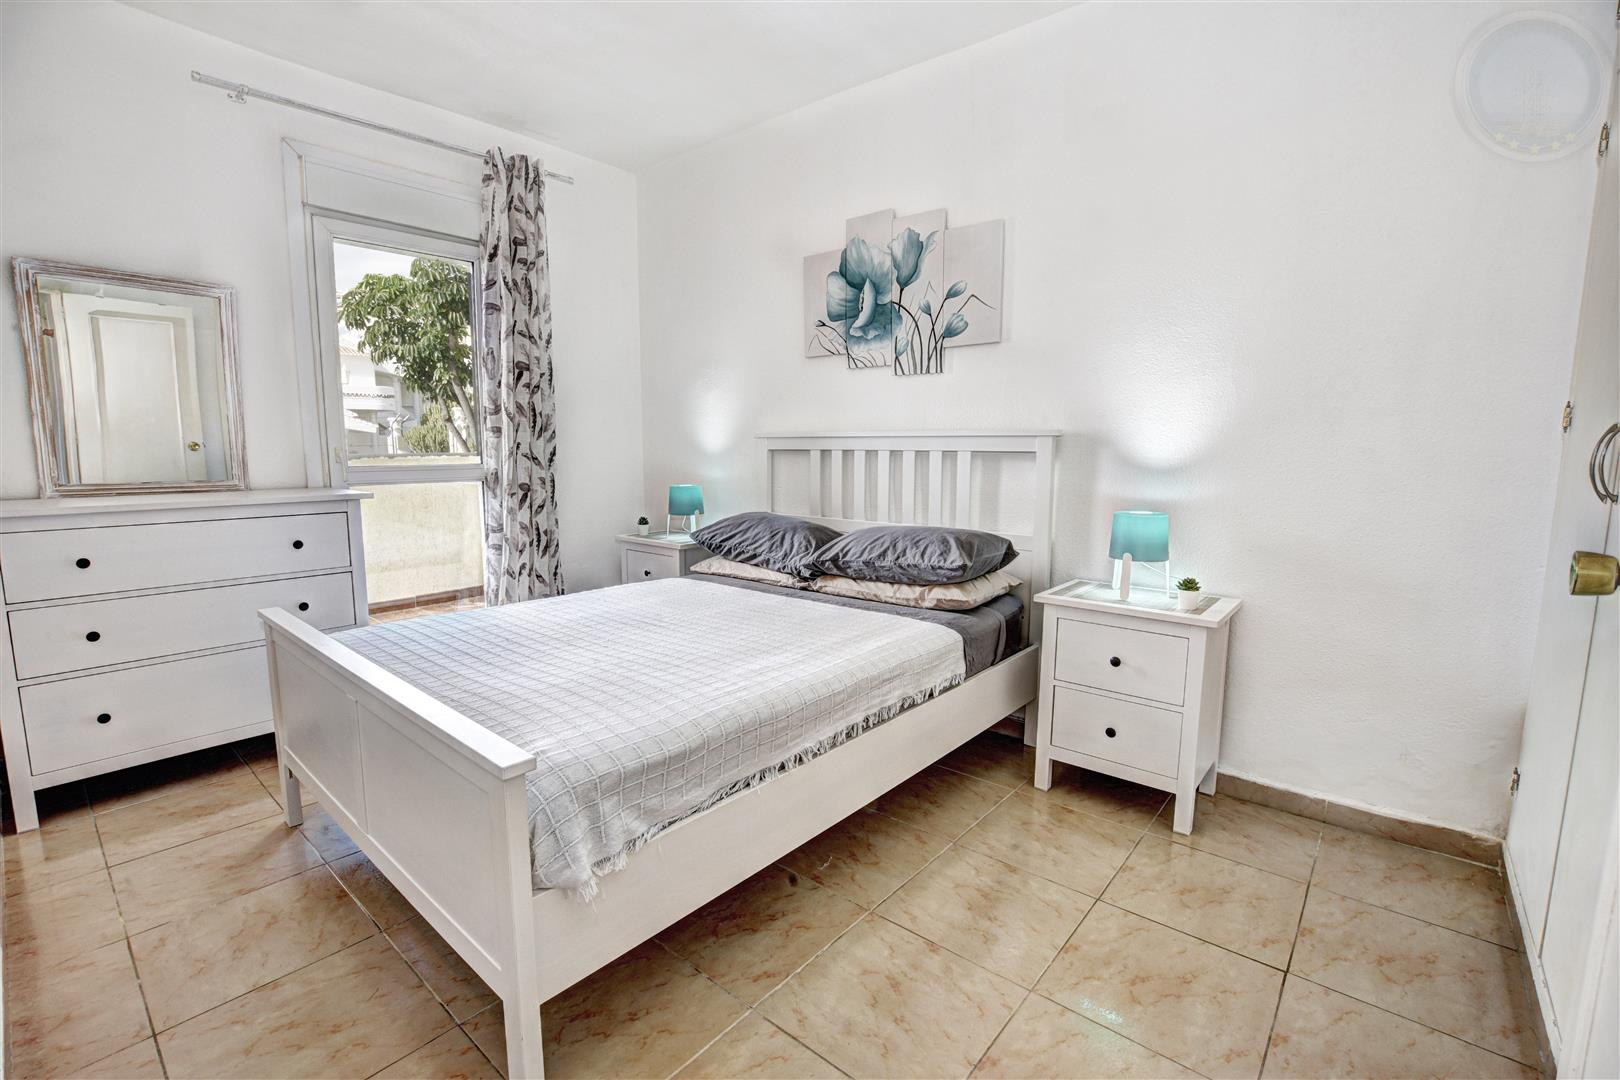 Apartment for Sale in Benalbeach bedroom